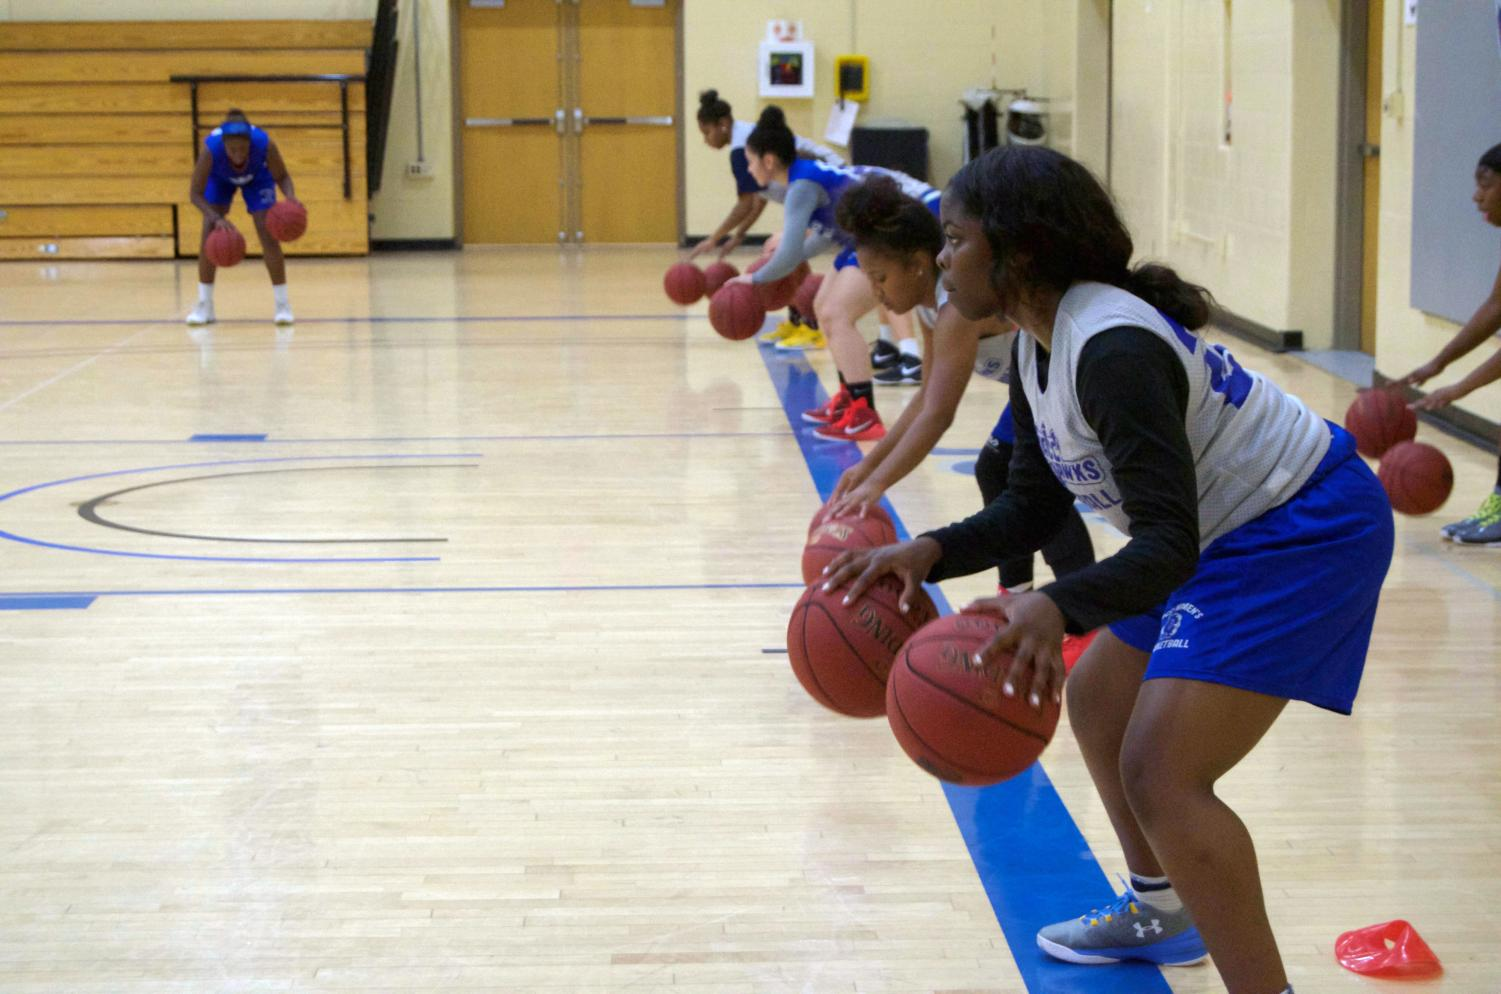 Women's Basketball players practice for a game together before the season ends.